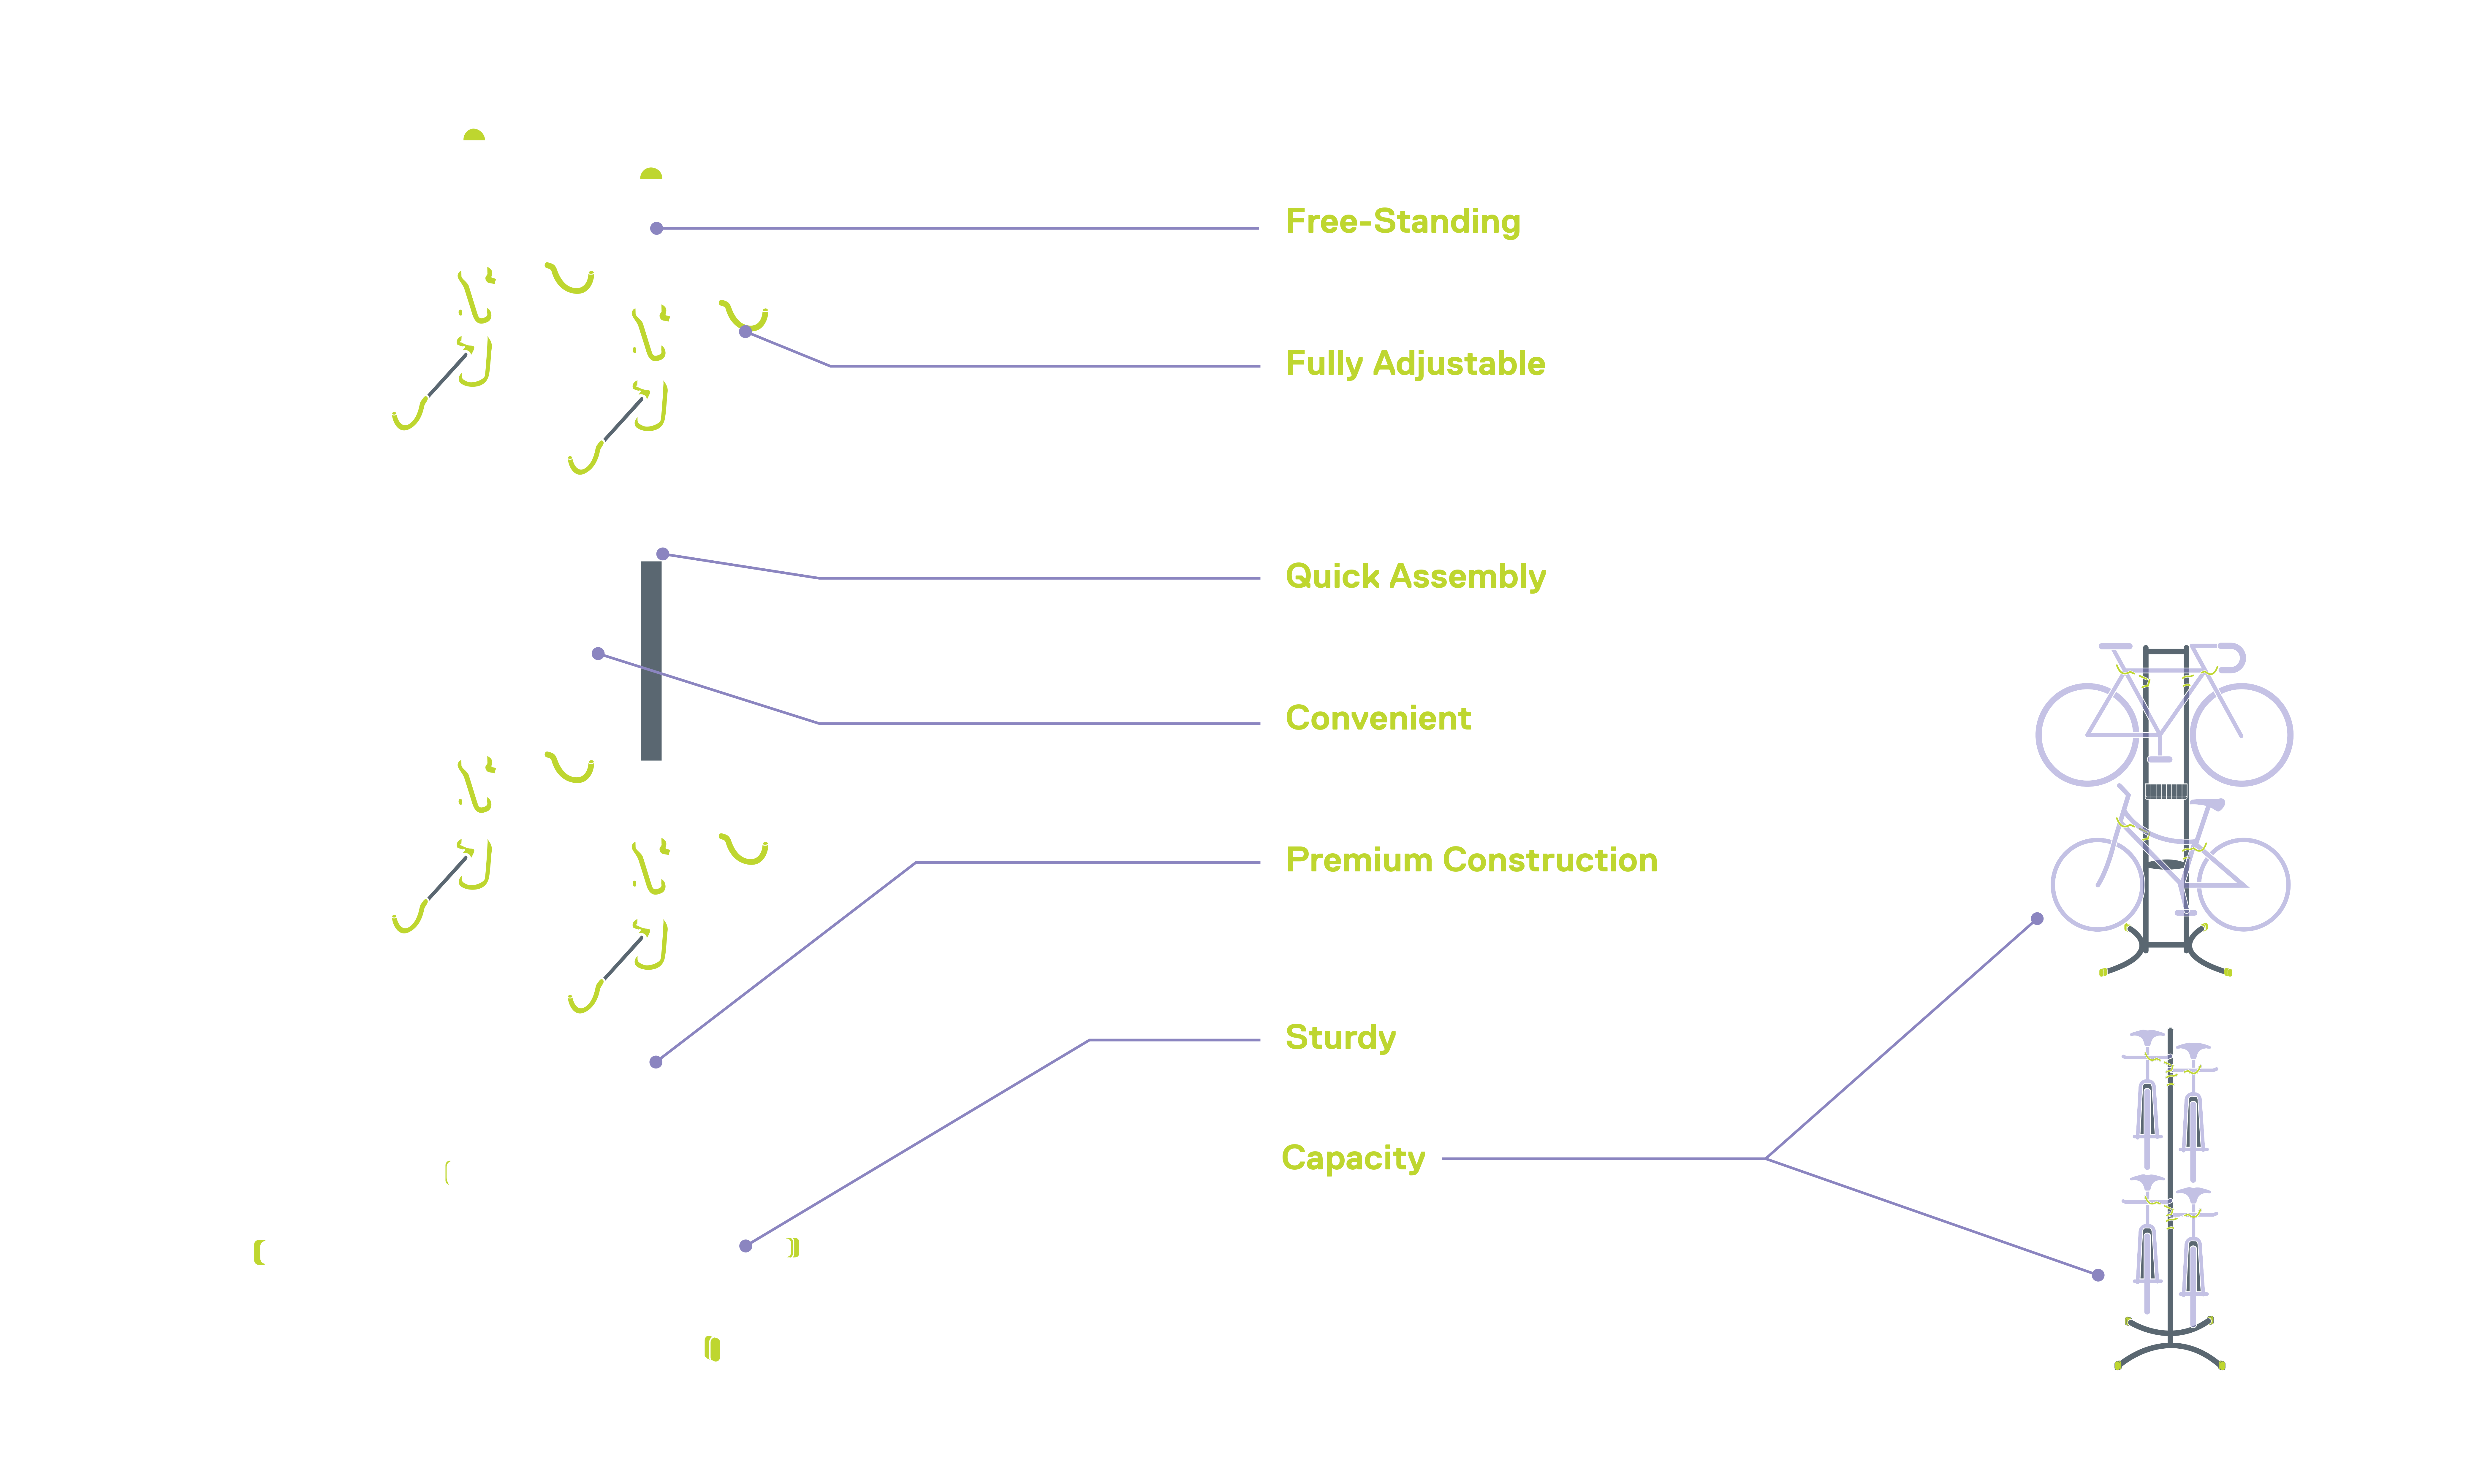 Four Bike Free-Standing Rack with Basket diagram